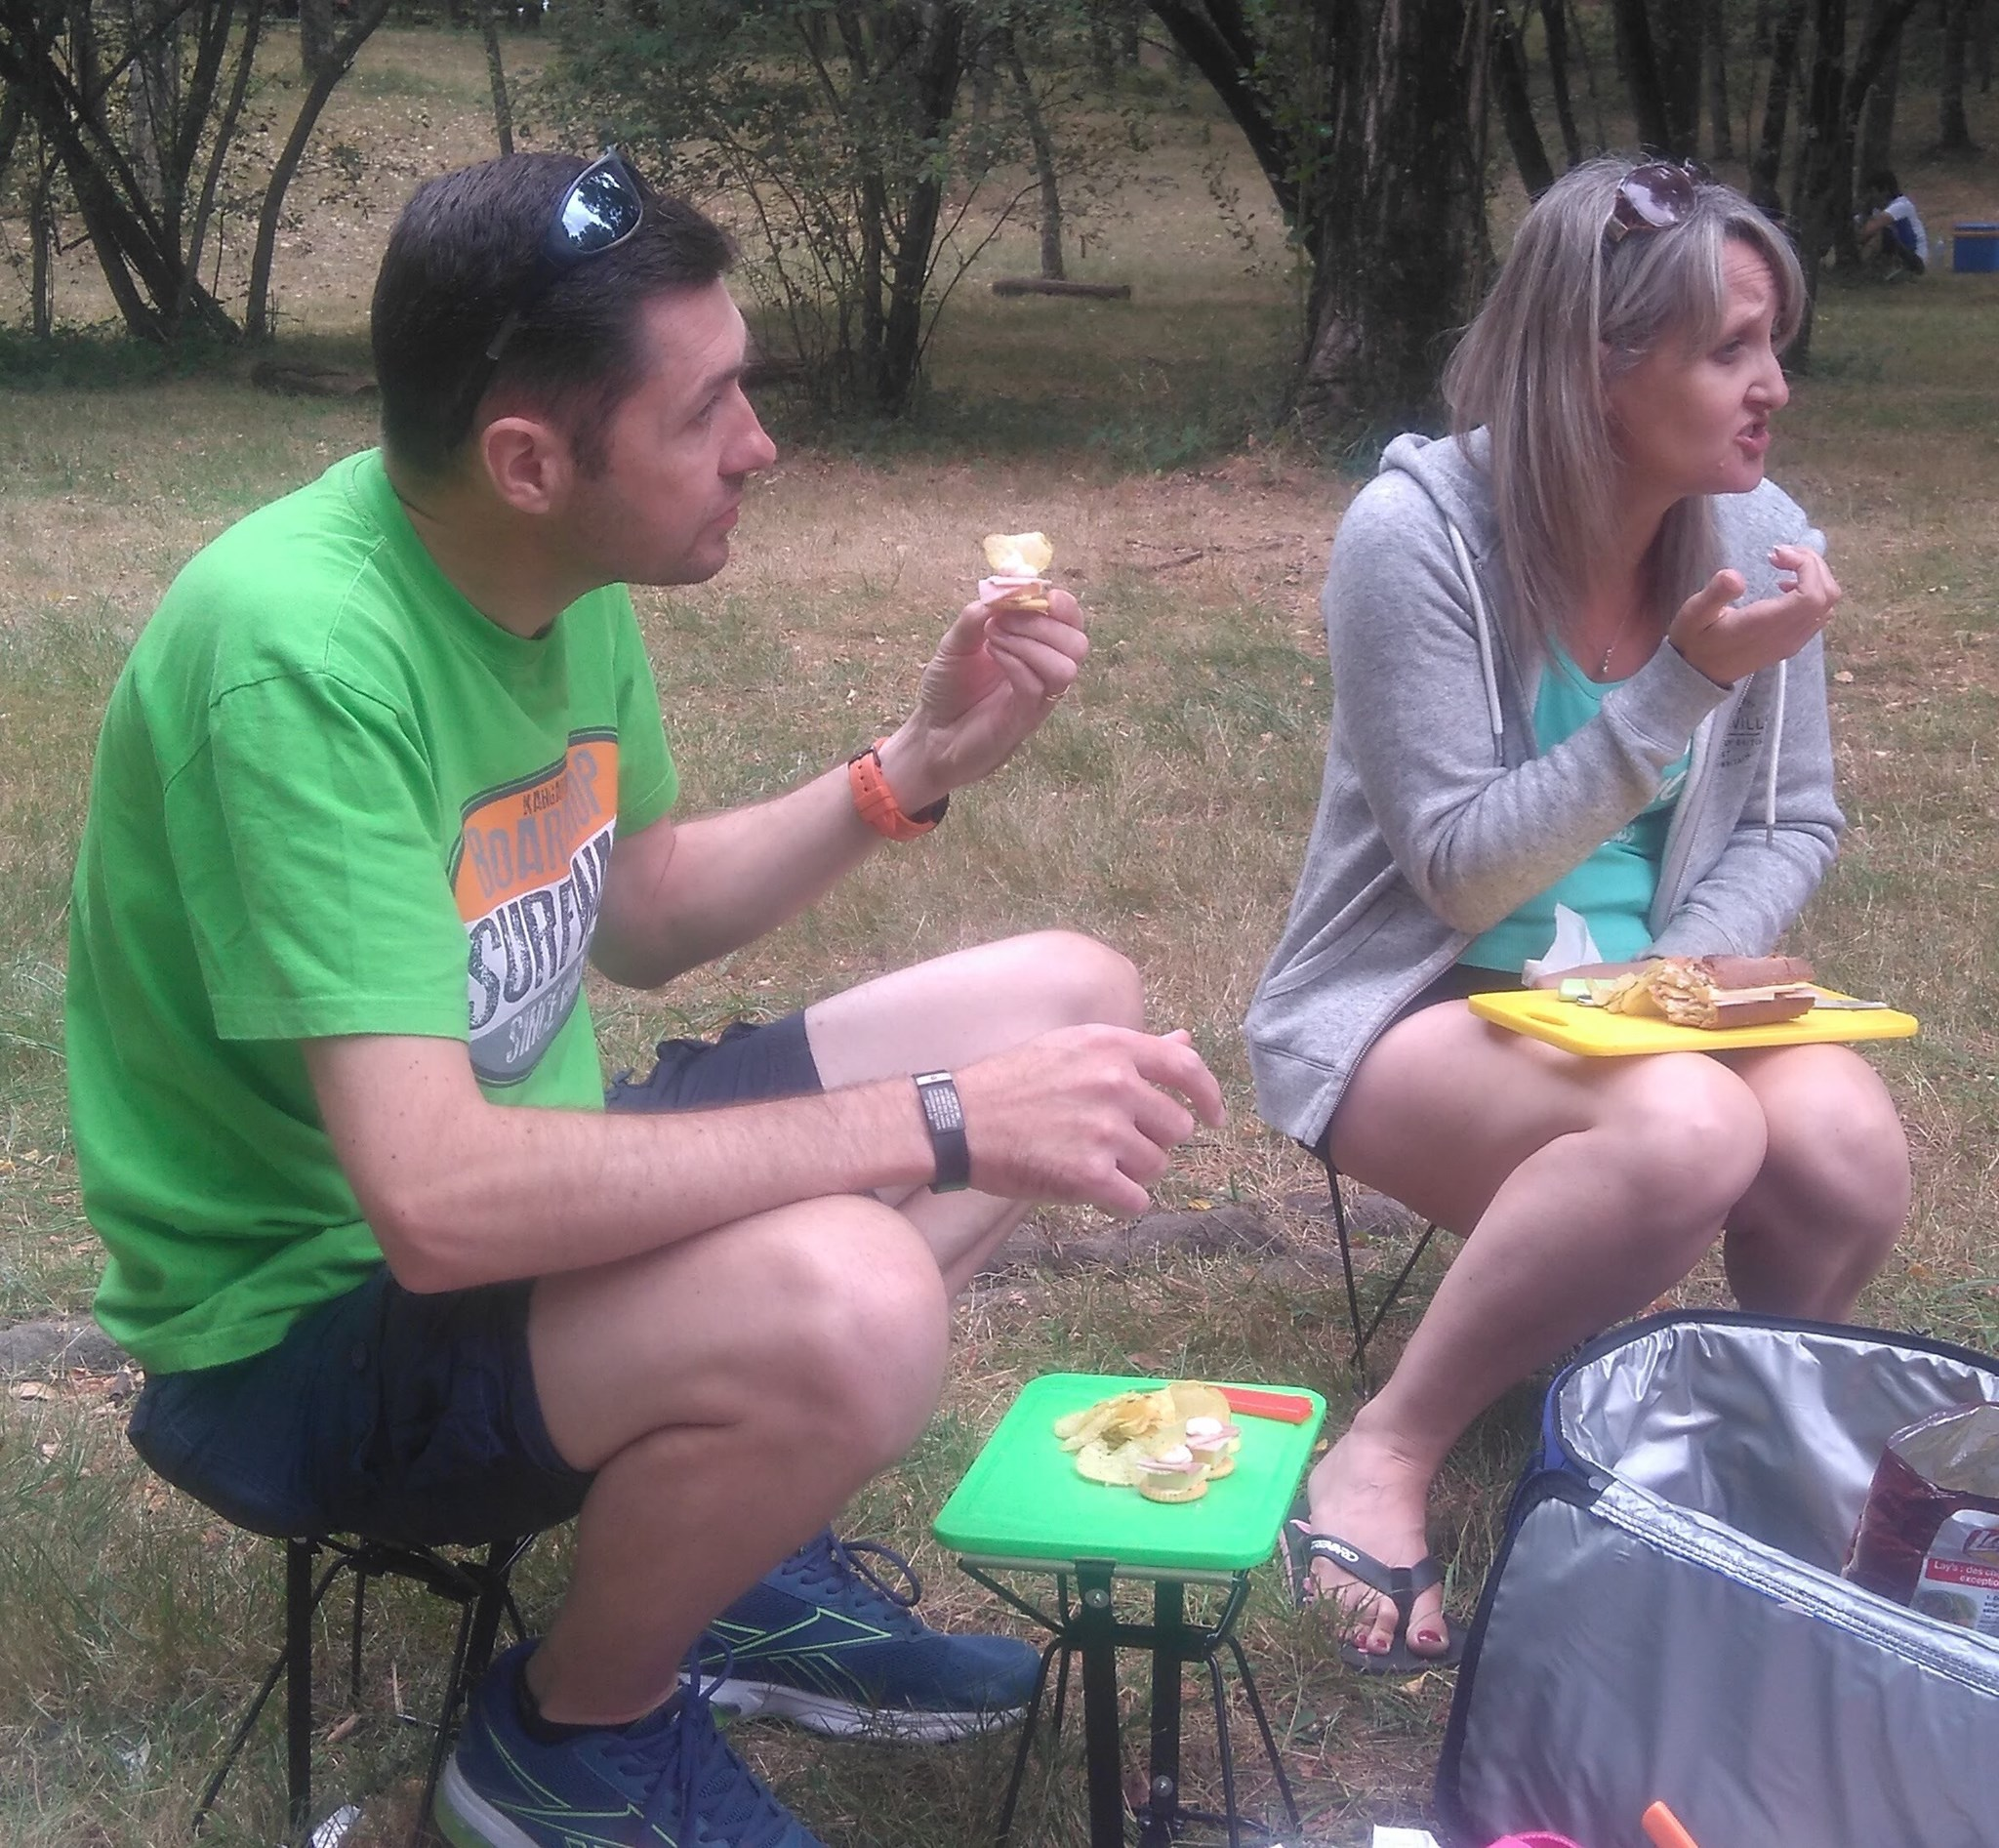 Gluten Free Picnic in France with Family and Friends